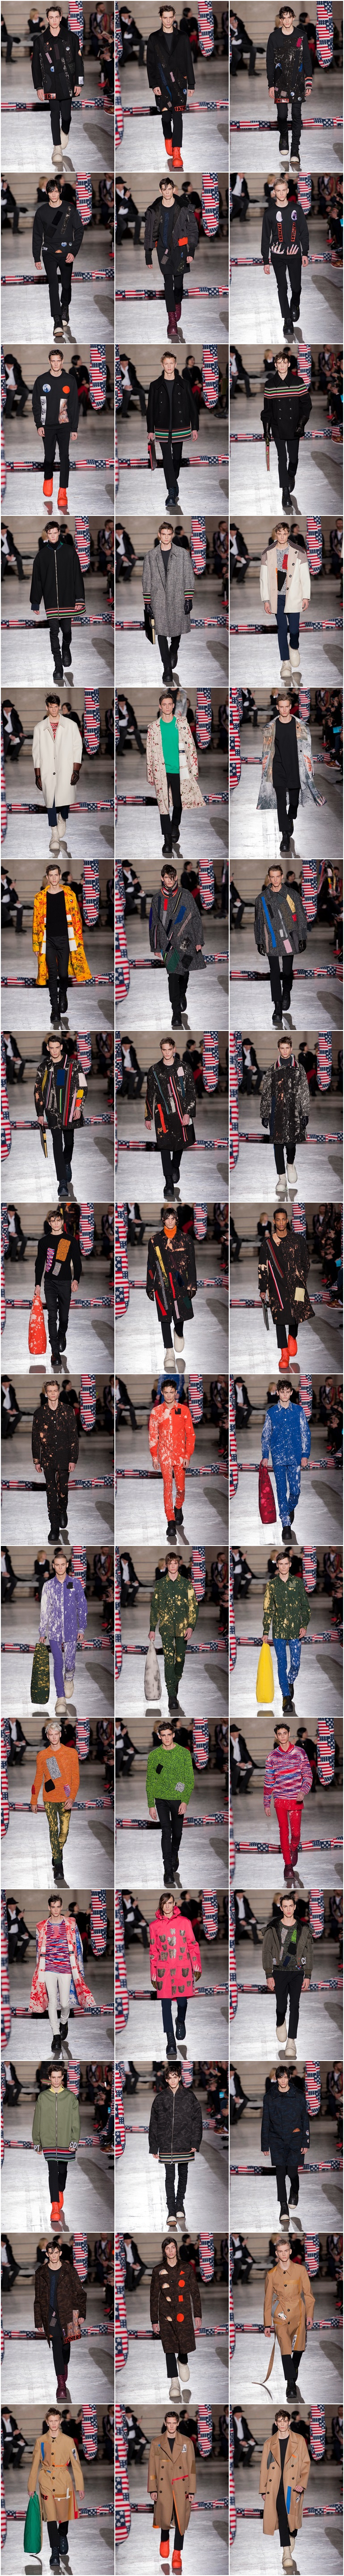 raf-simons-fall-winter-2014-fashion4addicts.com